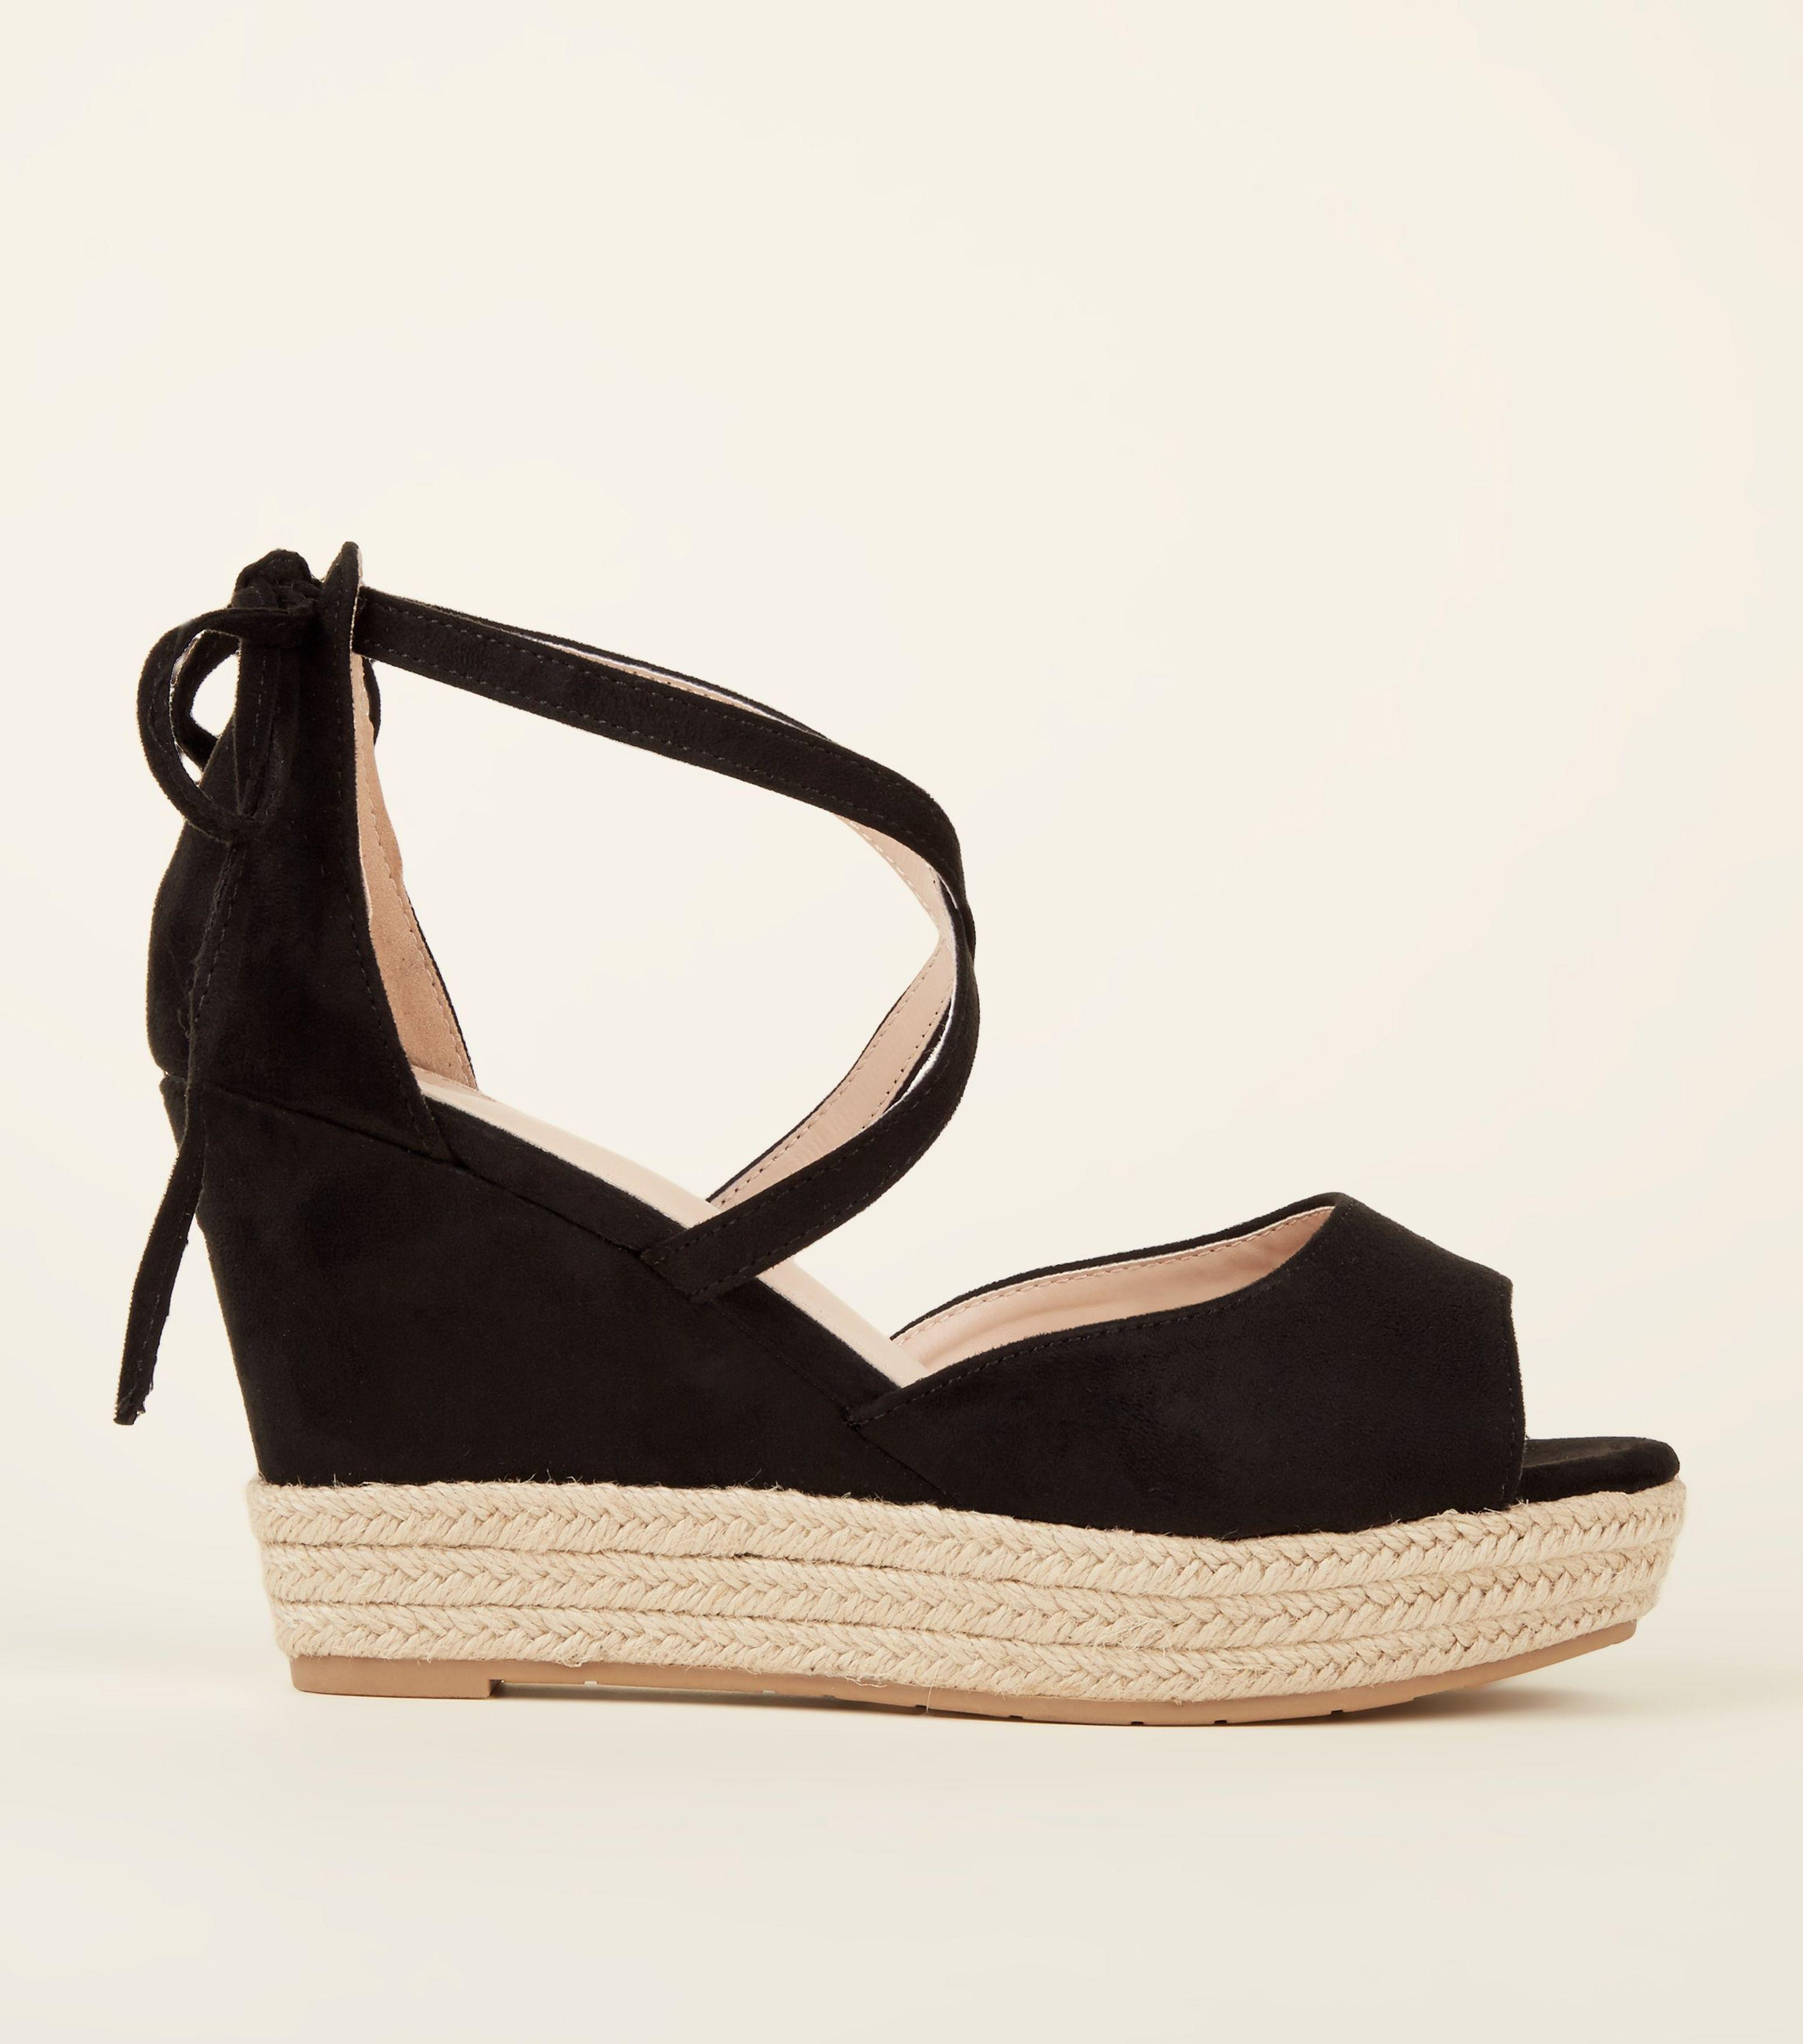 75010c55bfc New Look Black Suedette Bow Back Peep Toe Wedges in Black - Lyst